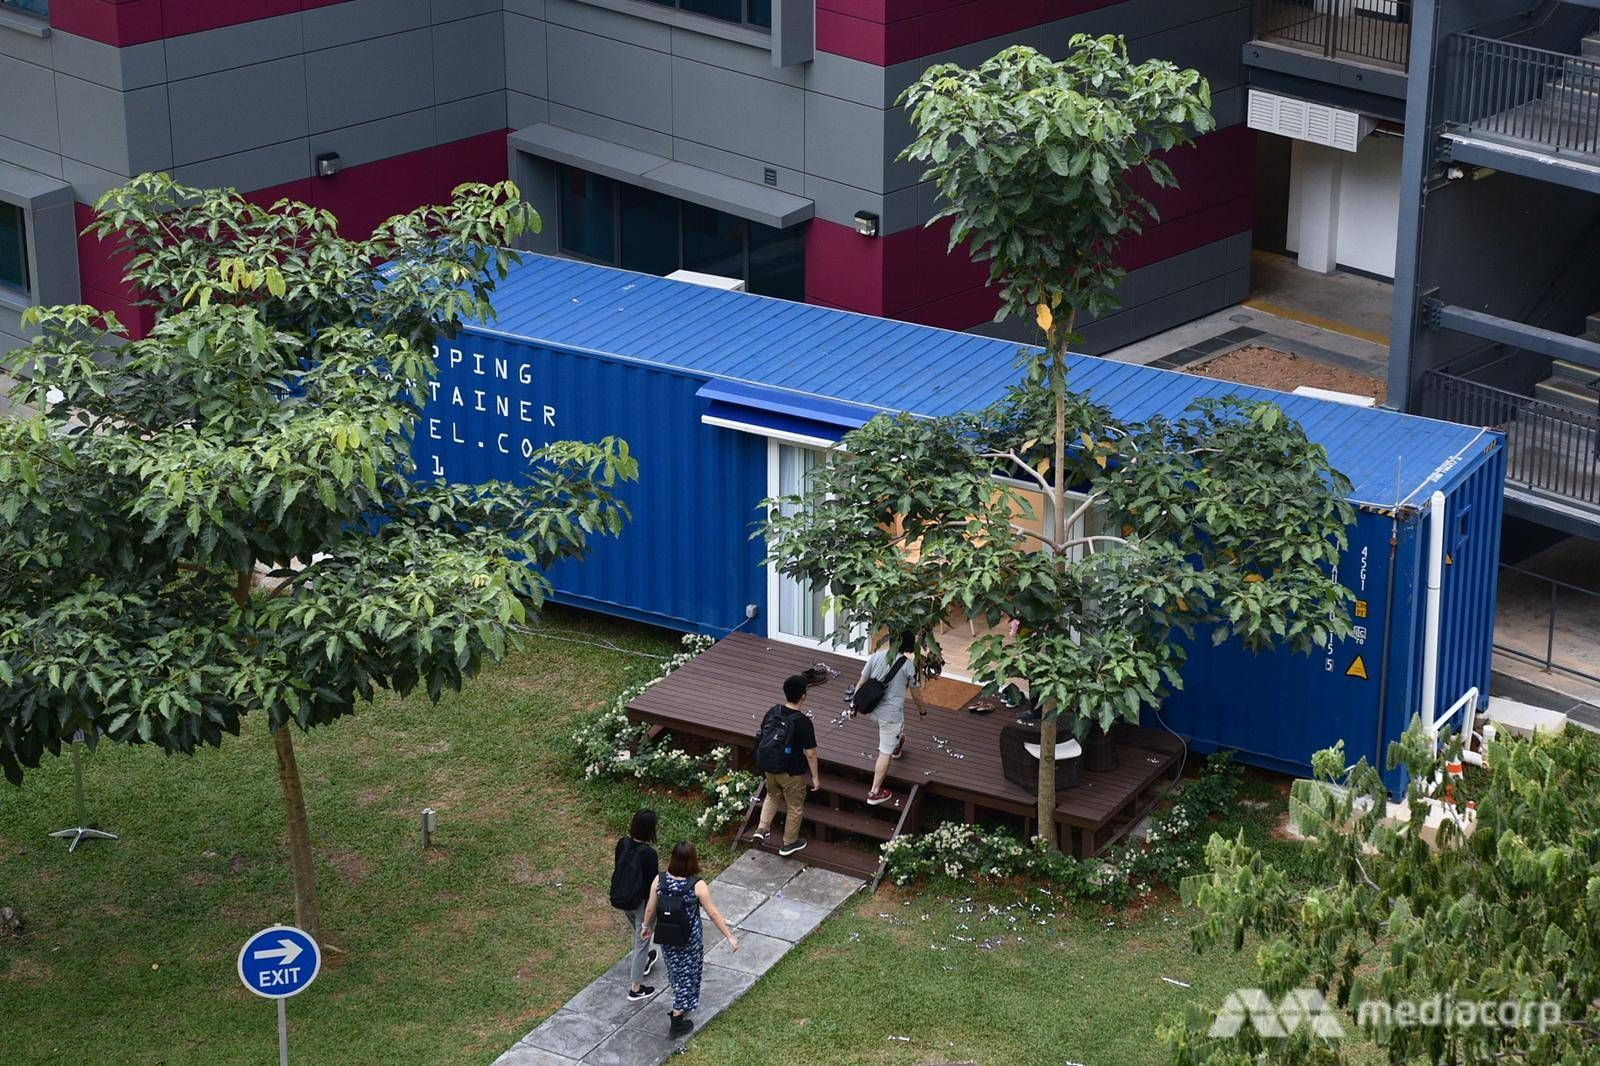 The containers of the Singapore Shipping Container Hotel